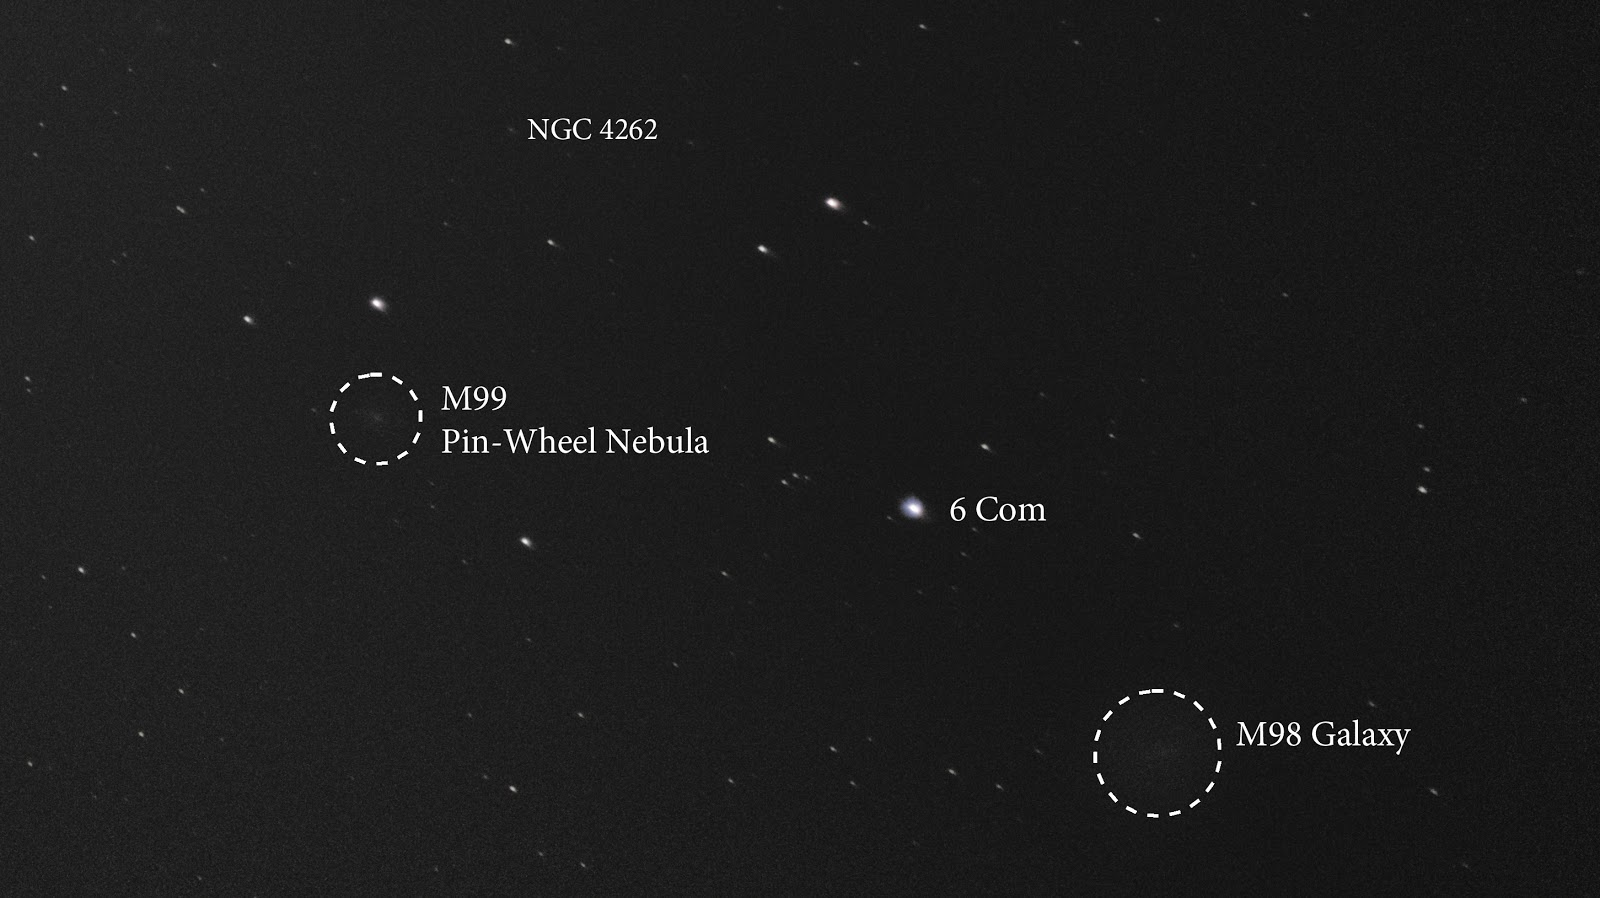 M99 the Pin-Wheel Nebula, and M98